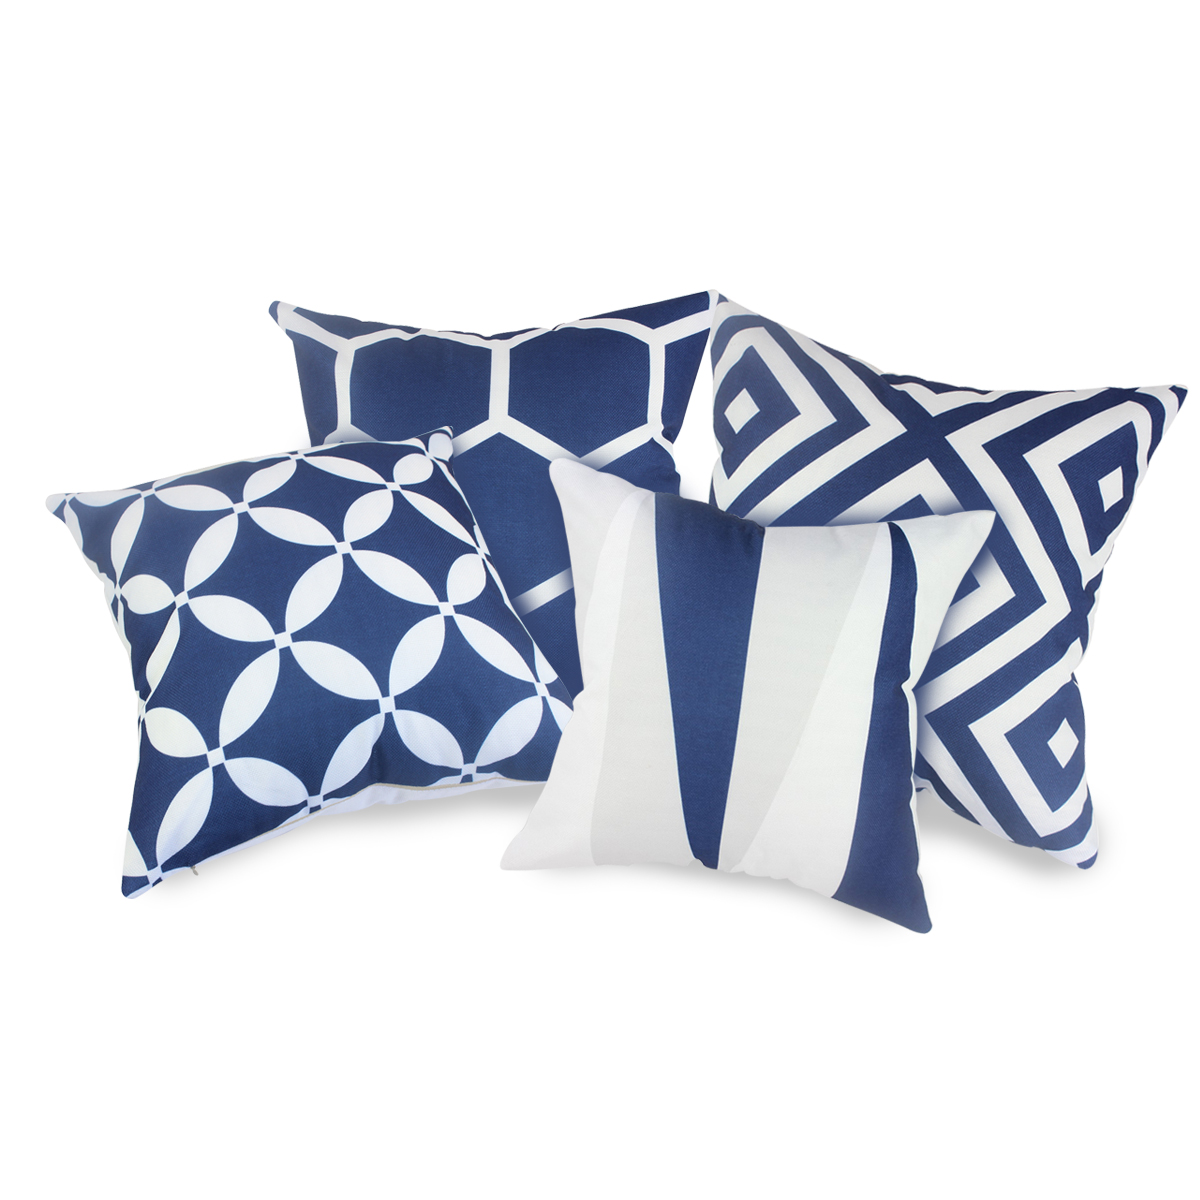 Fabricmcc Set of 4 Navy blue And White Geometric Decorative Pillow Covers,Fashion Couch Throws Cases Cushion Pillow Covers 18 x 18 for Living Room